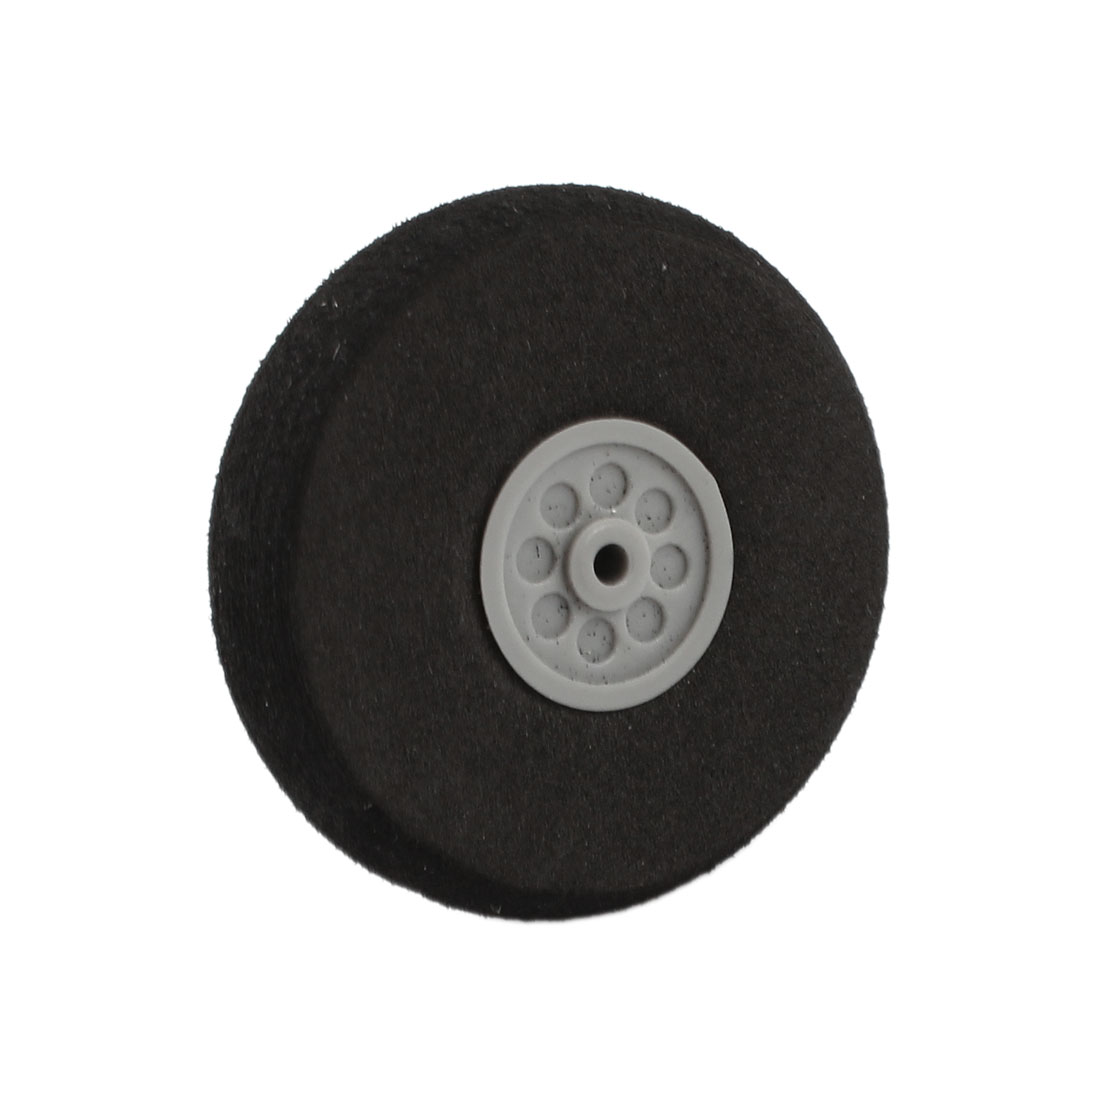 40mm Dia RC DIY Plane Model Airplane Repair Plastic Hub Foam Wheel Black